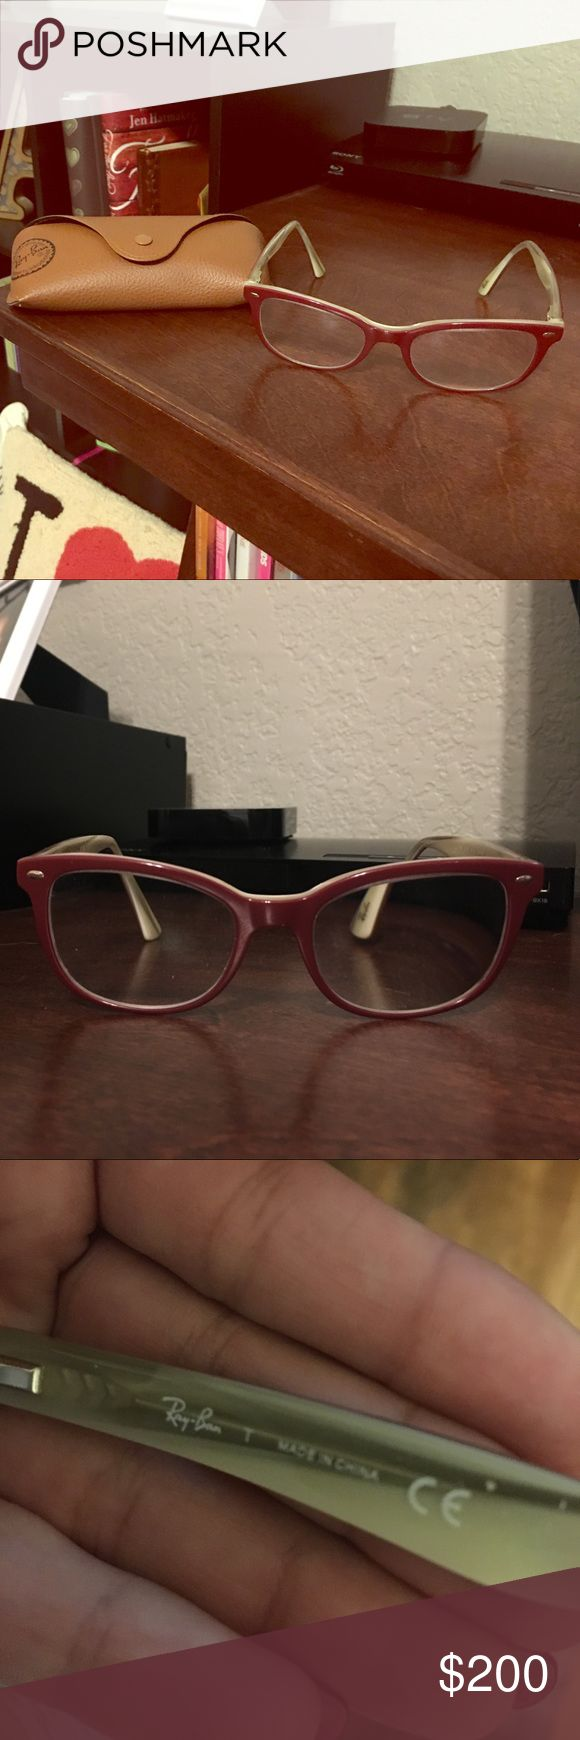 Red Ray-Ban Eyeglasses Super cute, rare red framed Ray-Ban Eyeglasses. They do have prescription lenses in them so they would need to be changed, but other than that they are in perfect condition! Ray-Ban Accessories Glasses